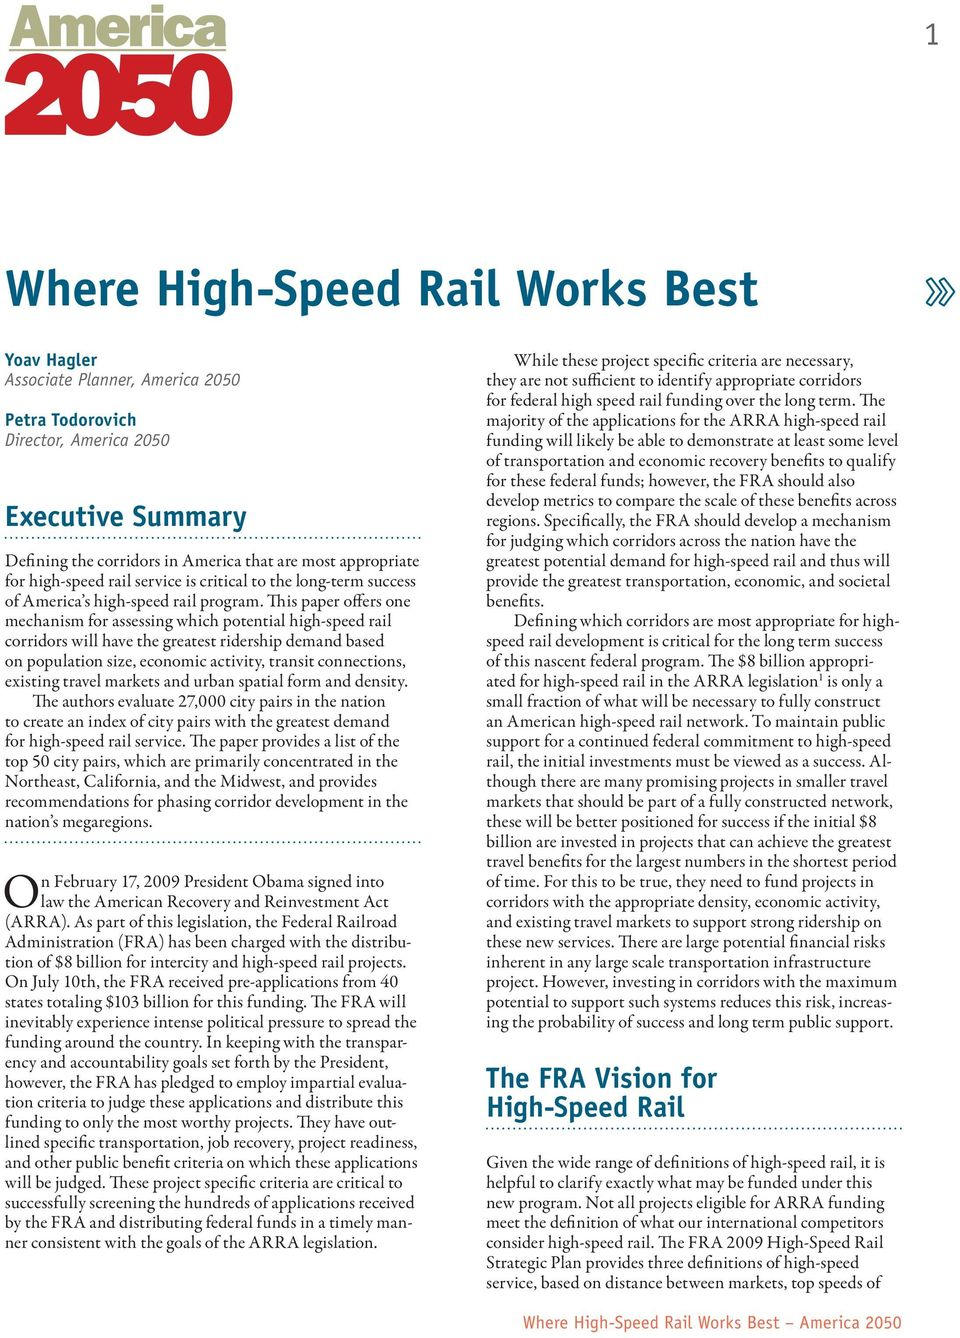 This paper offers one mechanism for assessing which potential high-speed rail corridors will have the greatest ridership demand based on population size, economic activity, transit connections,